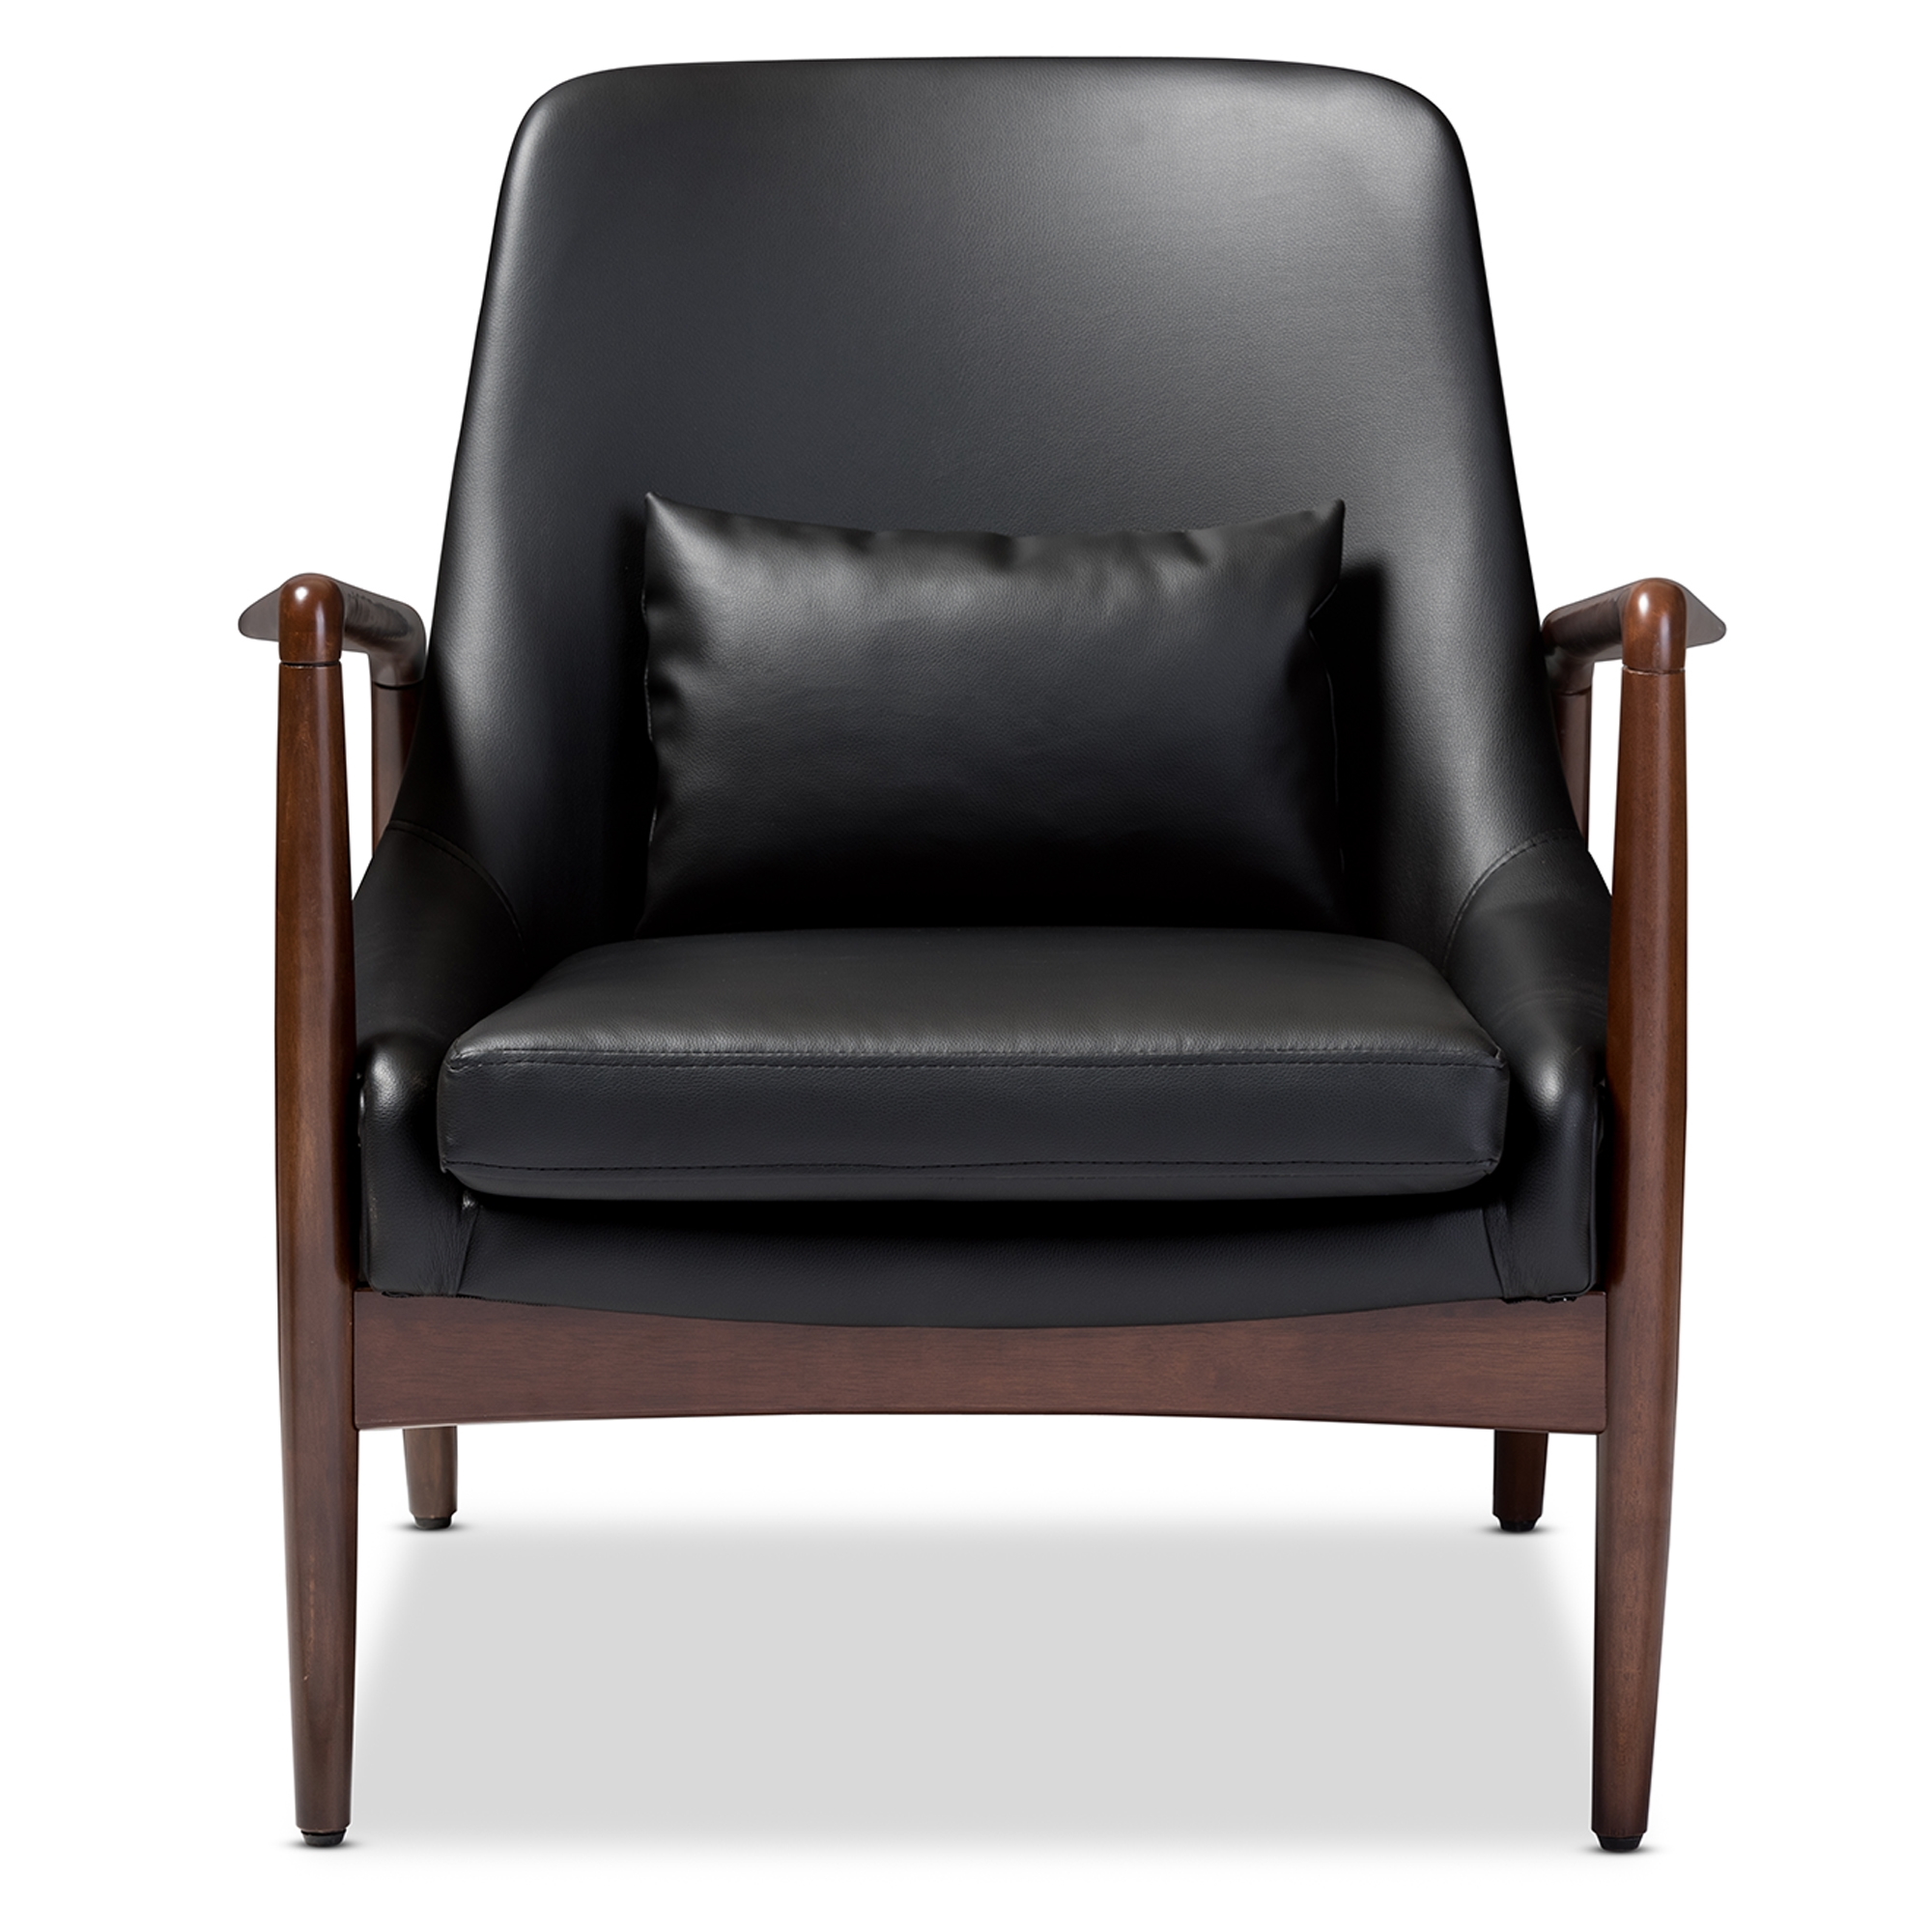 faux leather chair. Baxton Studio Carter Mid-Century Modern Retro Black Faux Leather Upholstered Leisure Accent Chair In Walnut Wood Frame D